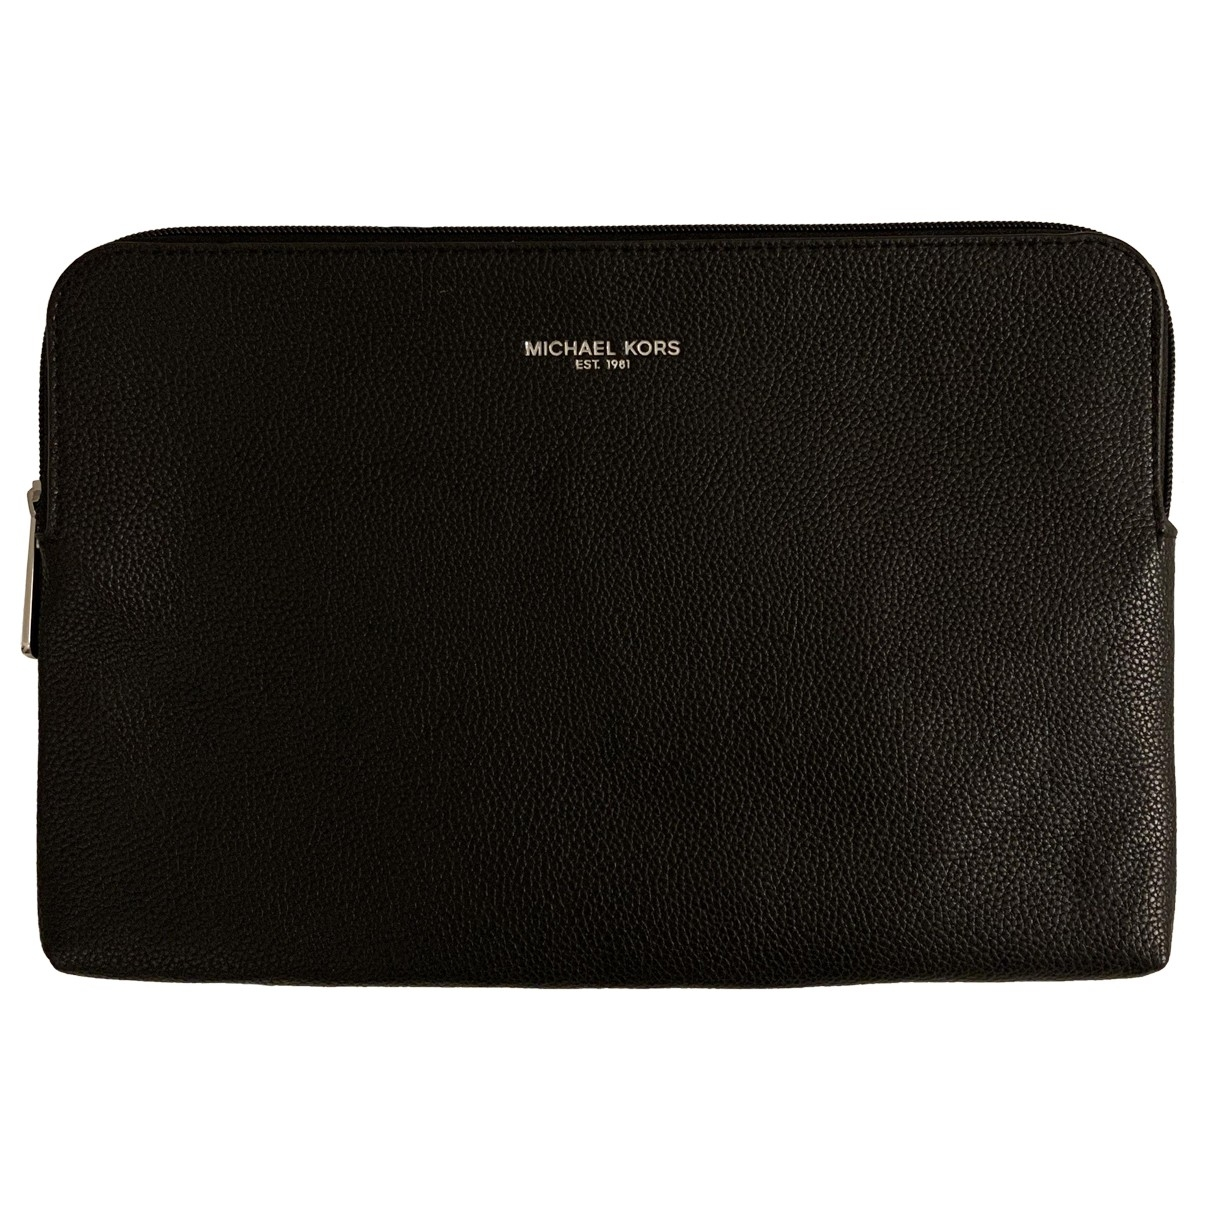 Michael Kors \N Clutch in  Schwarz Leder